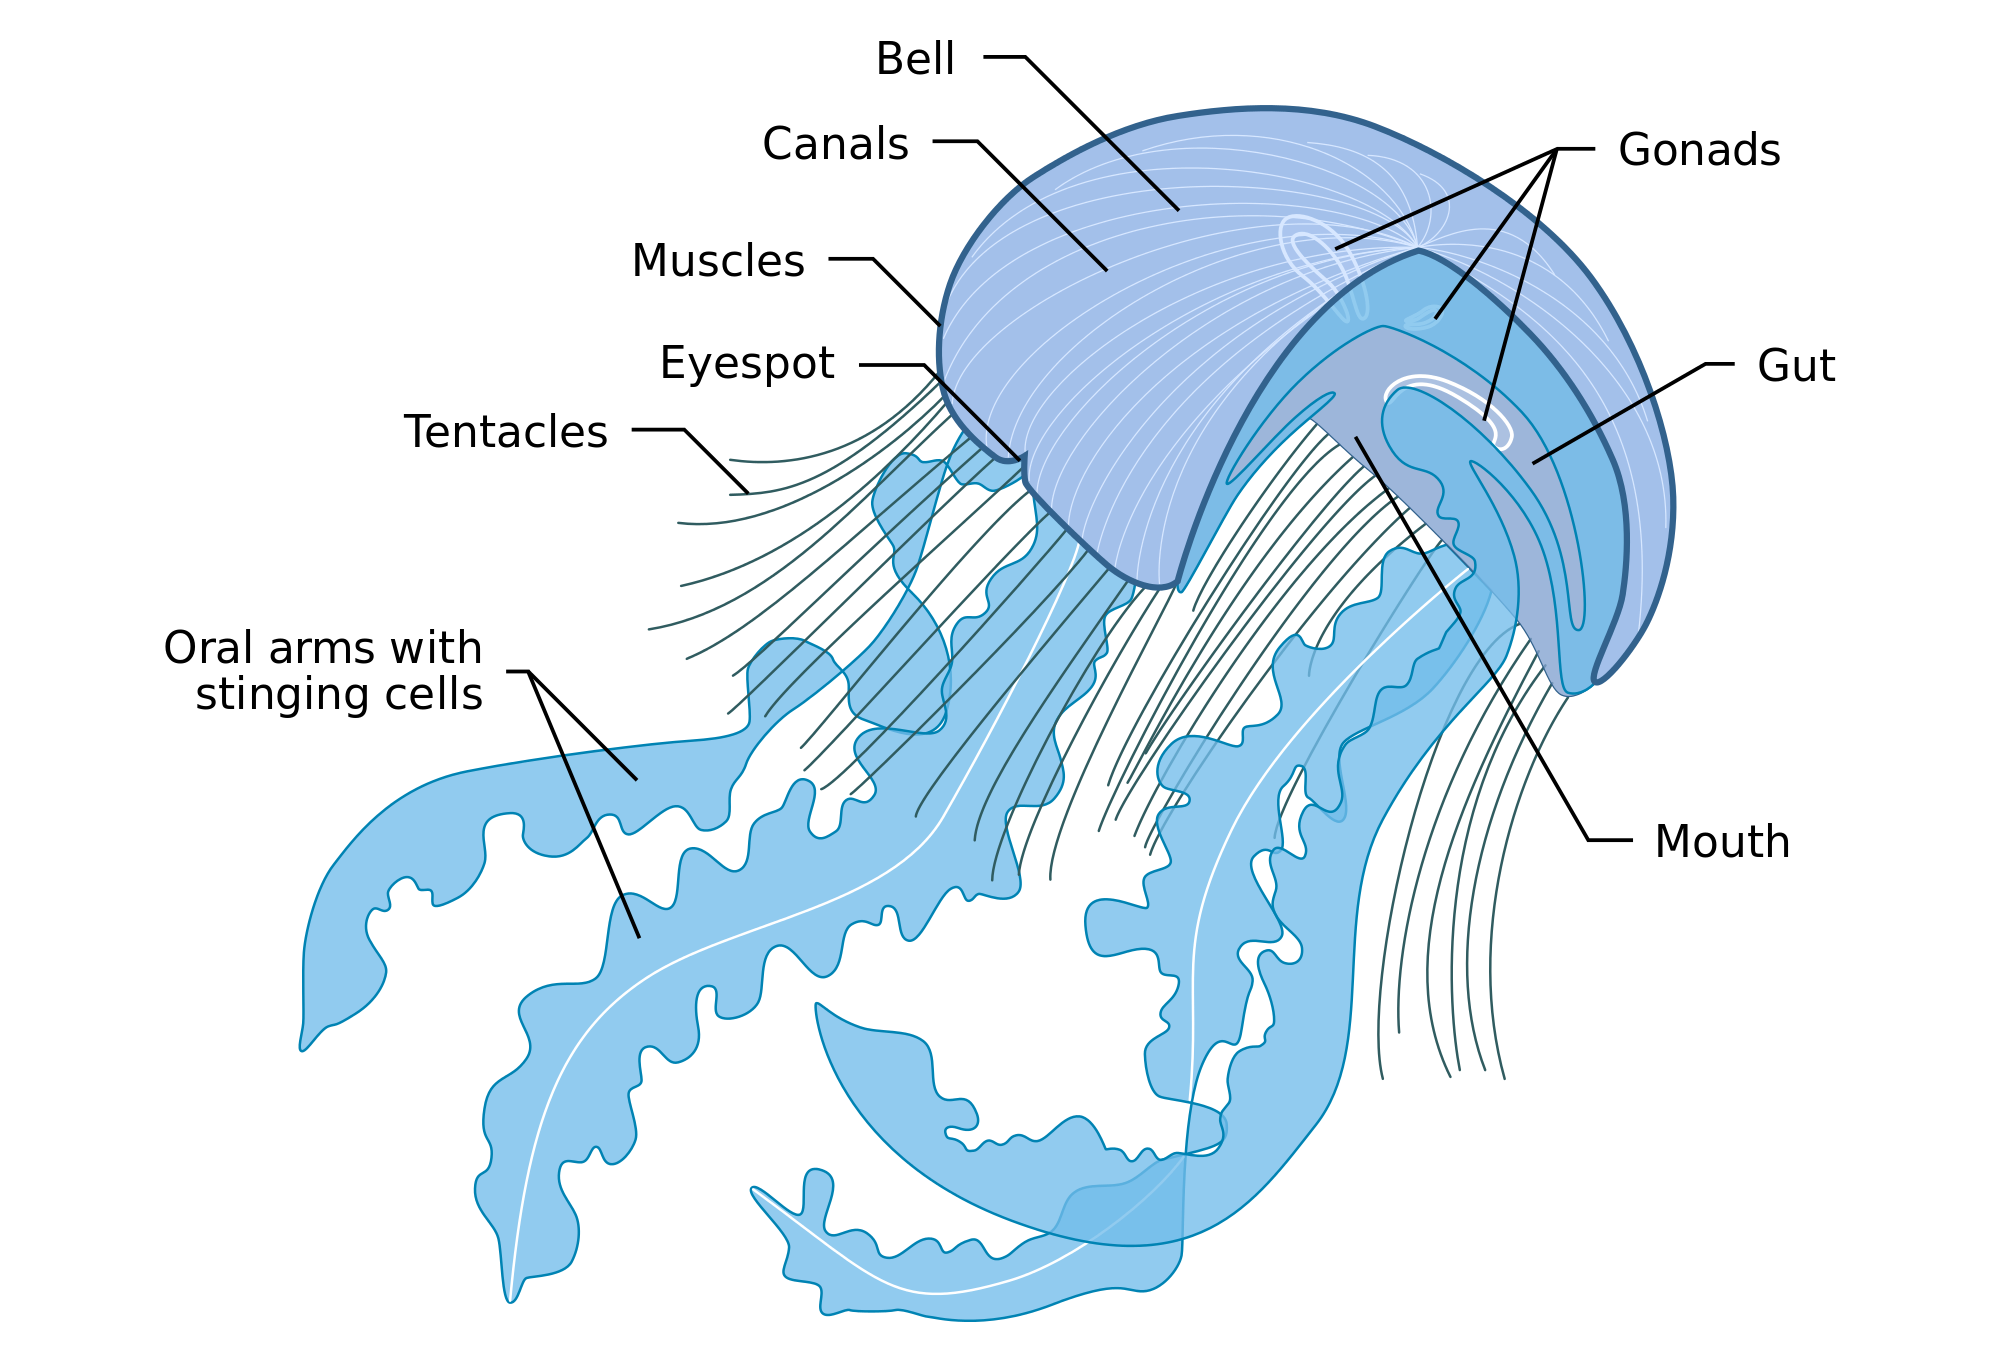 Jellyfish tentacles png. File anatomy of a